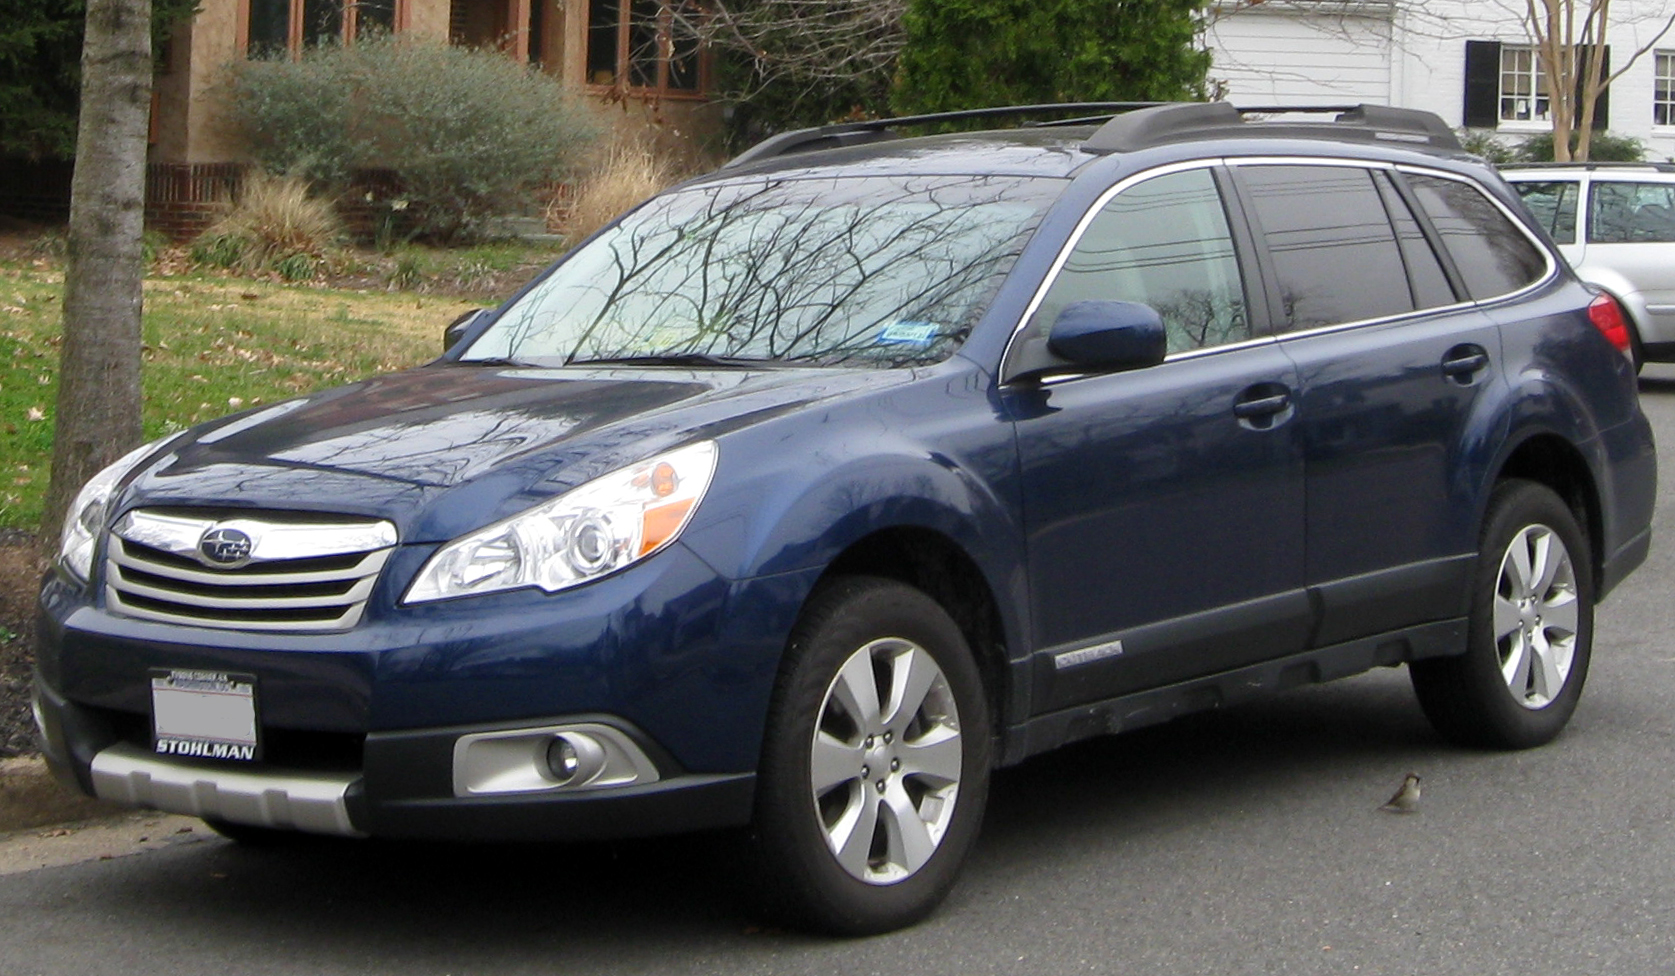 Is Subaru Outback A Good Used Car